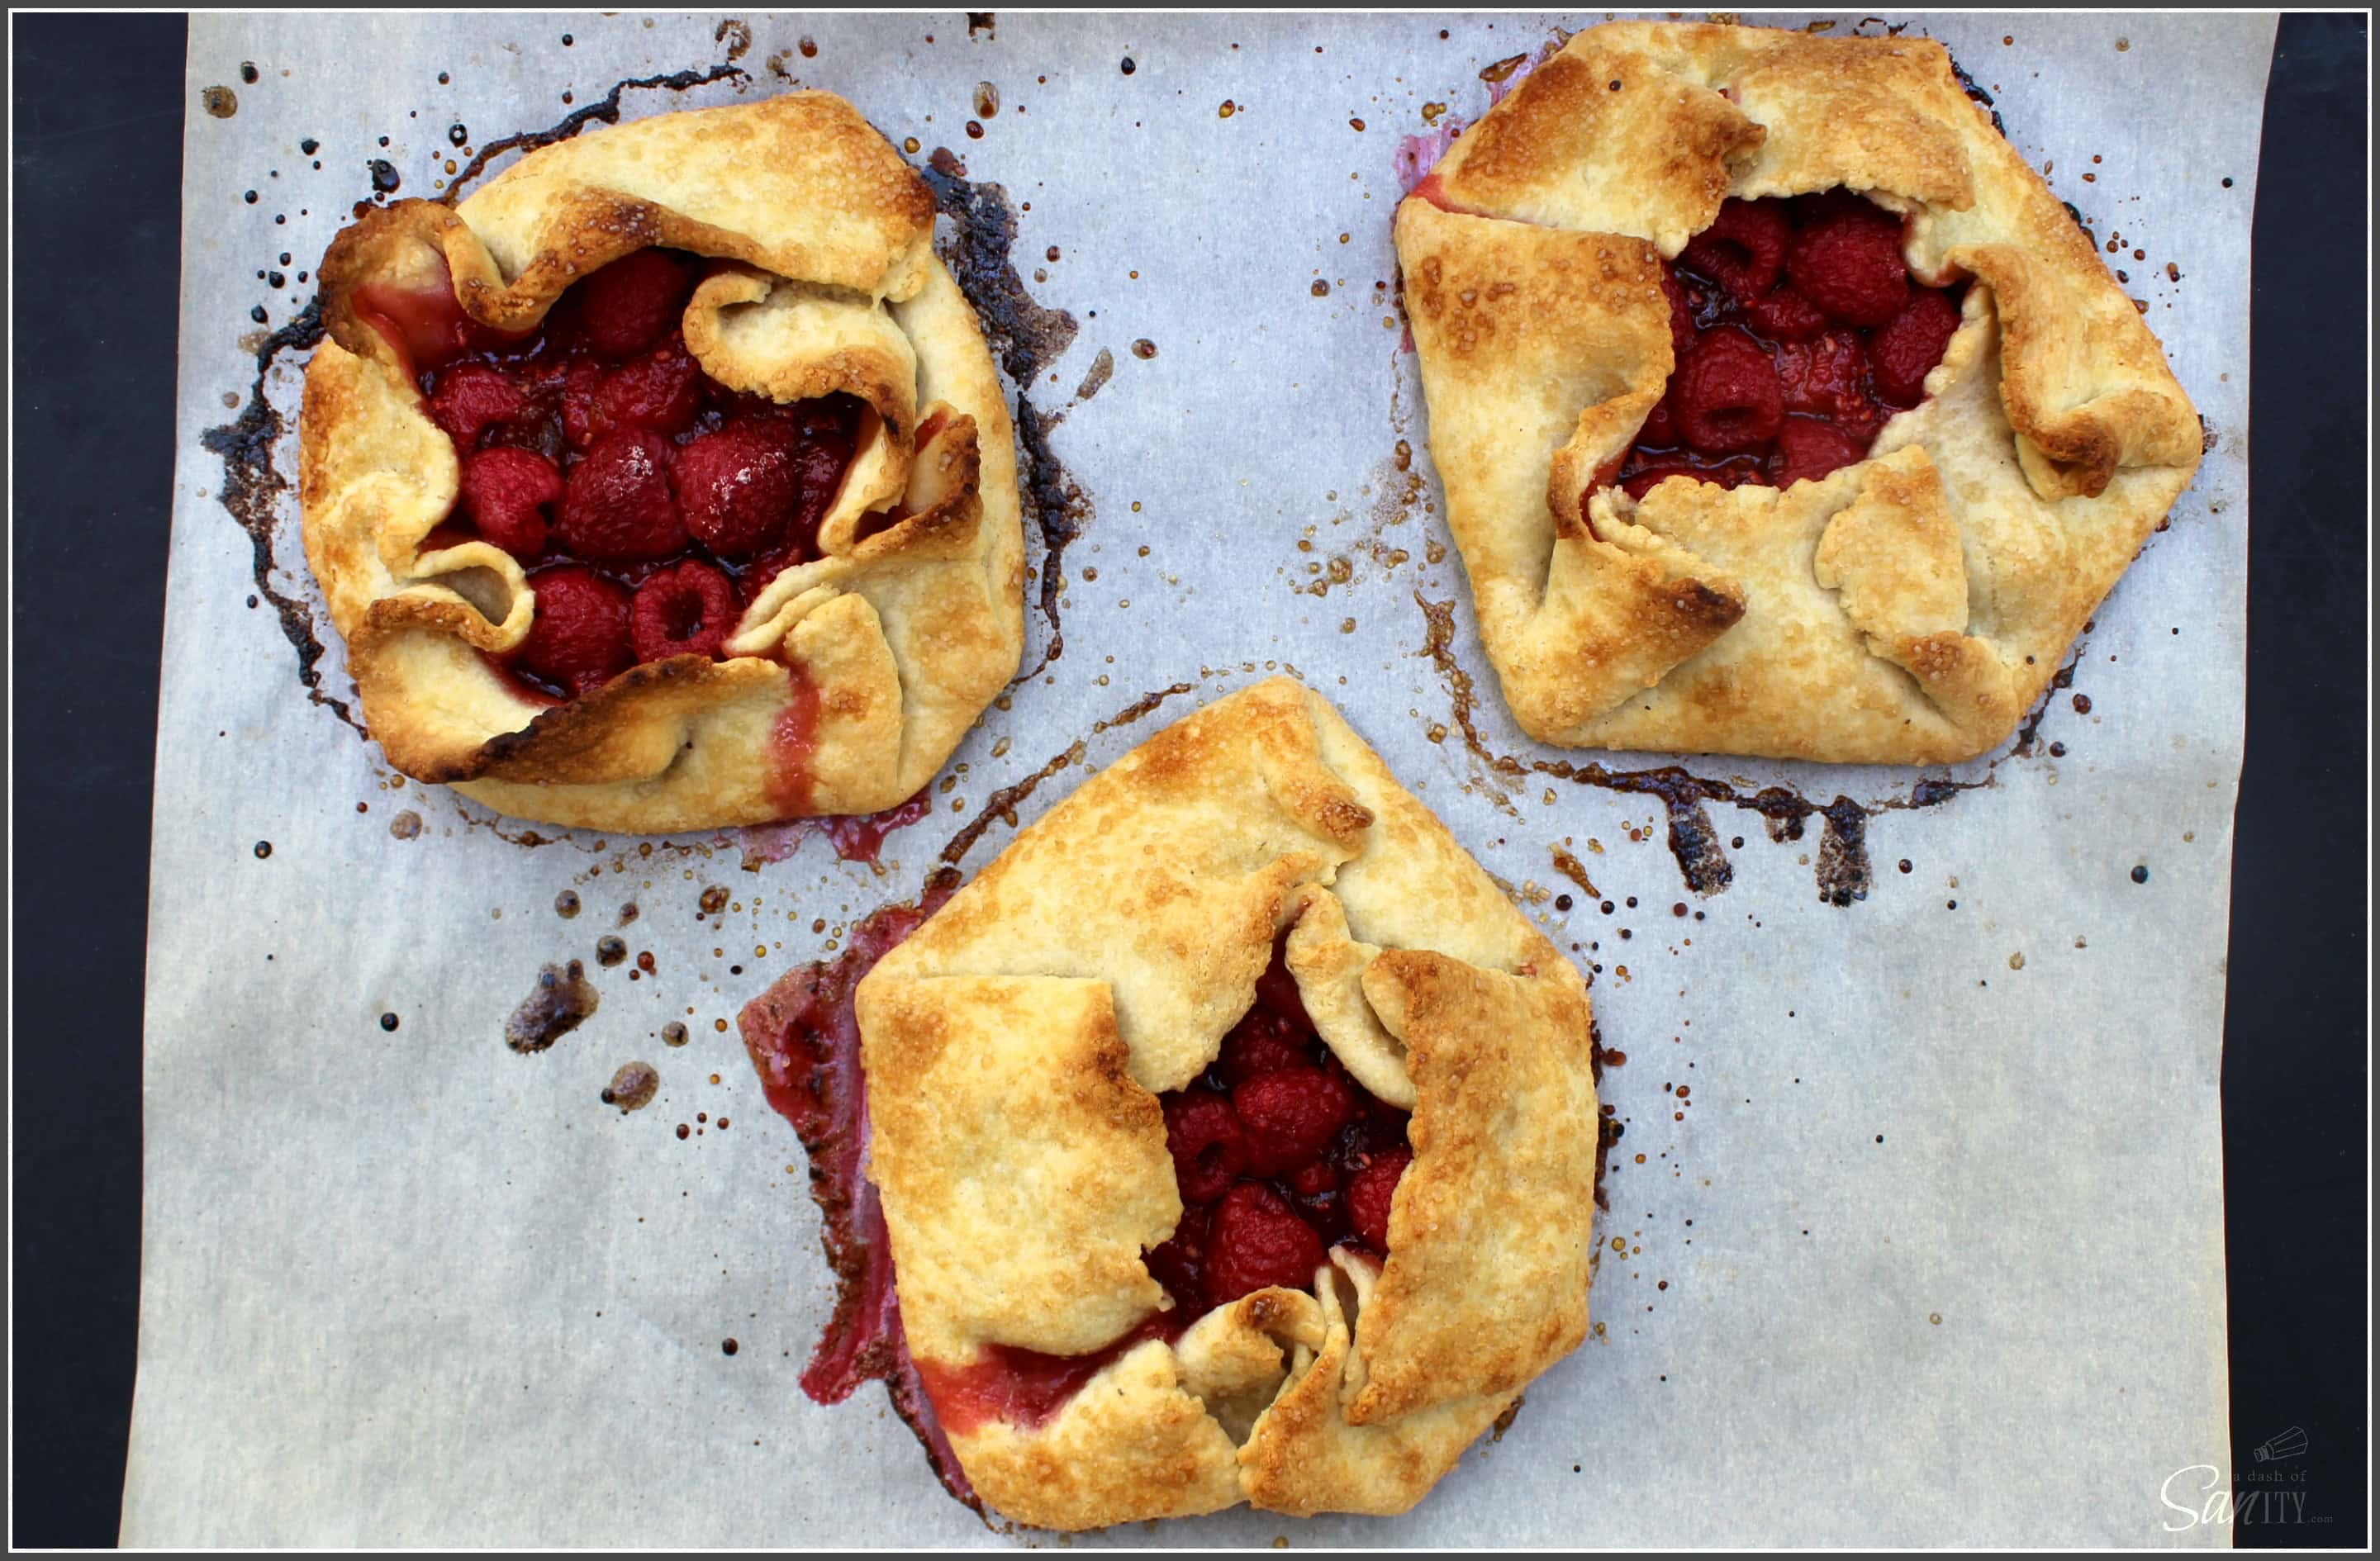 Raspberry & Peach Crostata is a simple Italian pastry filled with fresh raspberries & peach preserves. These are a perfect balance of tart and sweet.